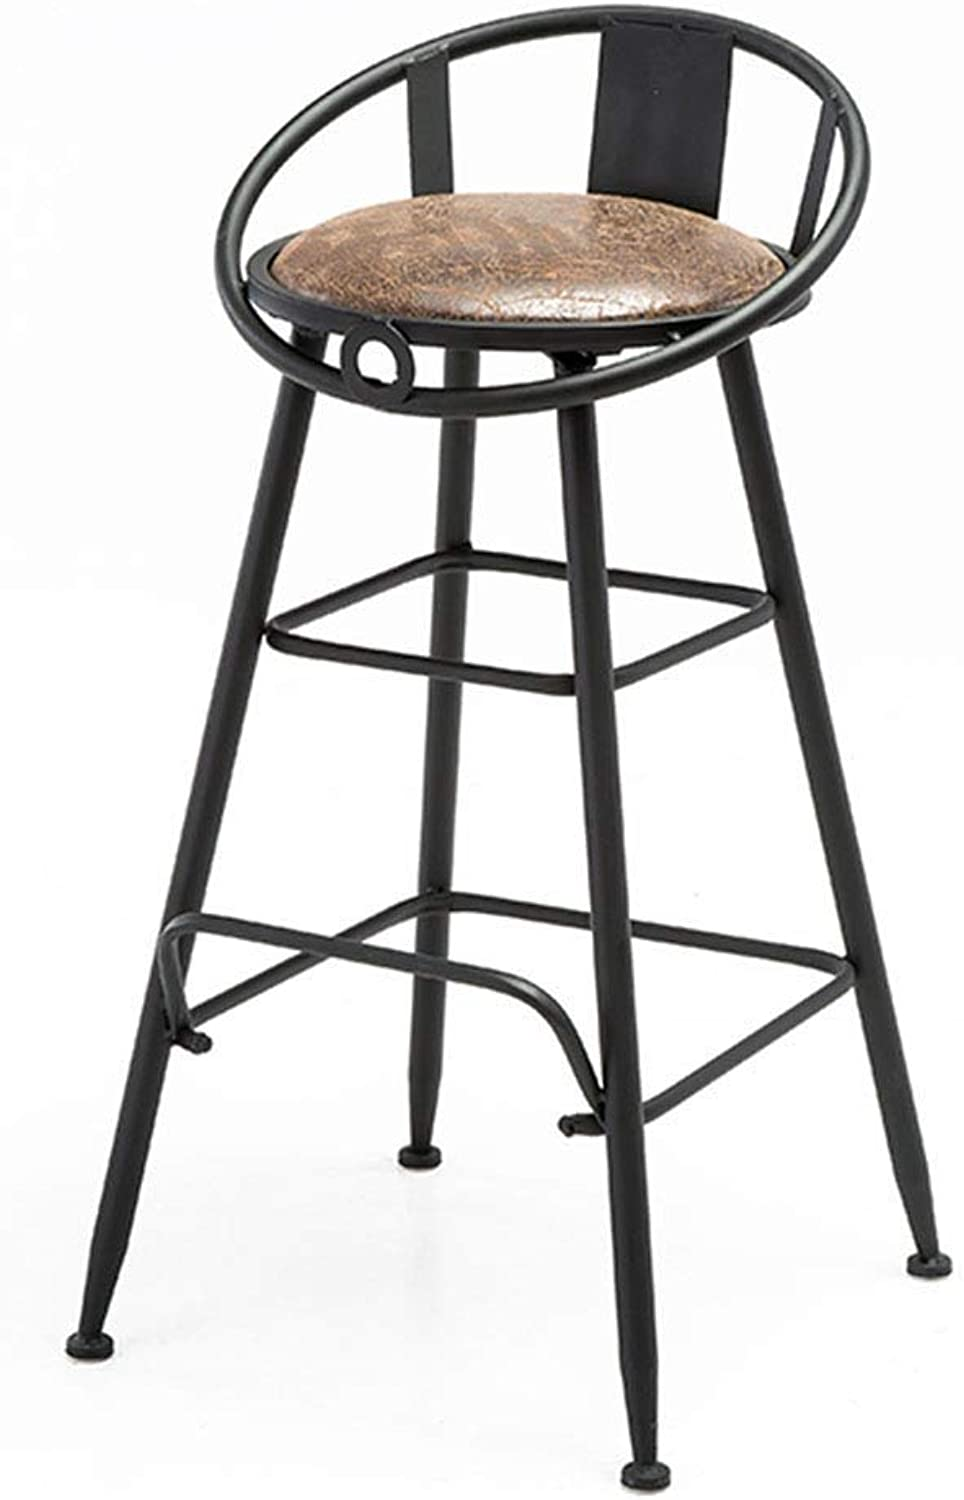 Barstools Chair with Foot Pedal, PU Leather Upholstered Bar Stool Iron Dining Chair Industrial Style Bar Stool High Chair, for Restaurant, Kitchen, Cafe, Bar Counter Height Swivel Seat